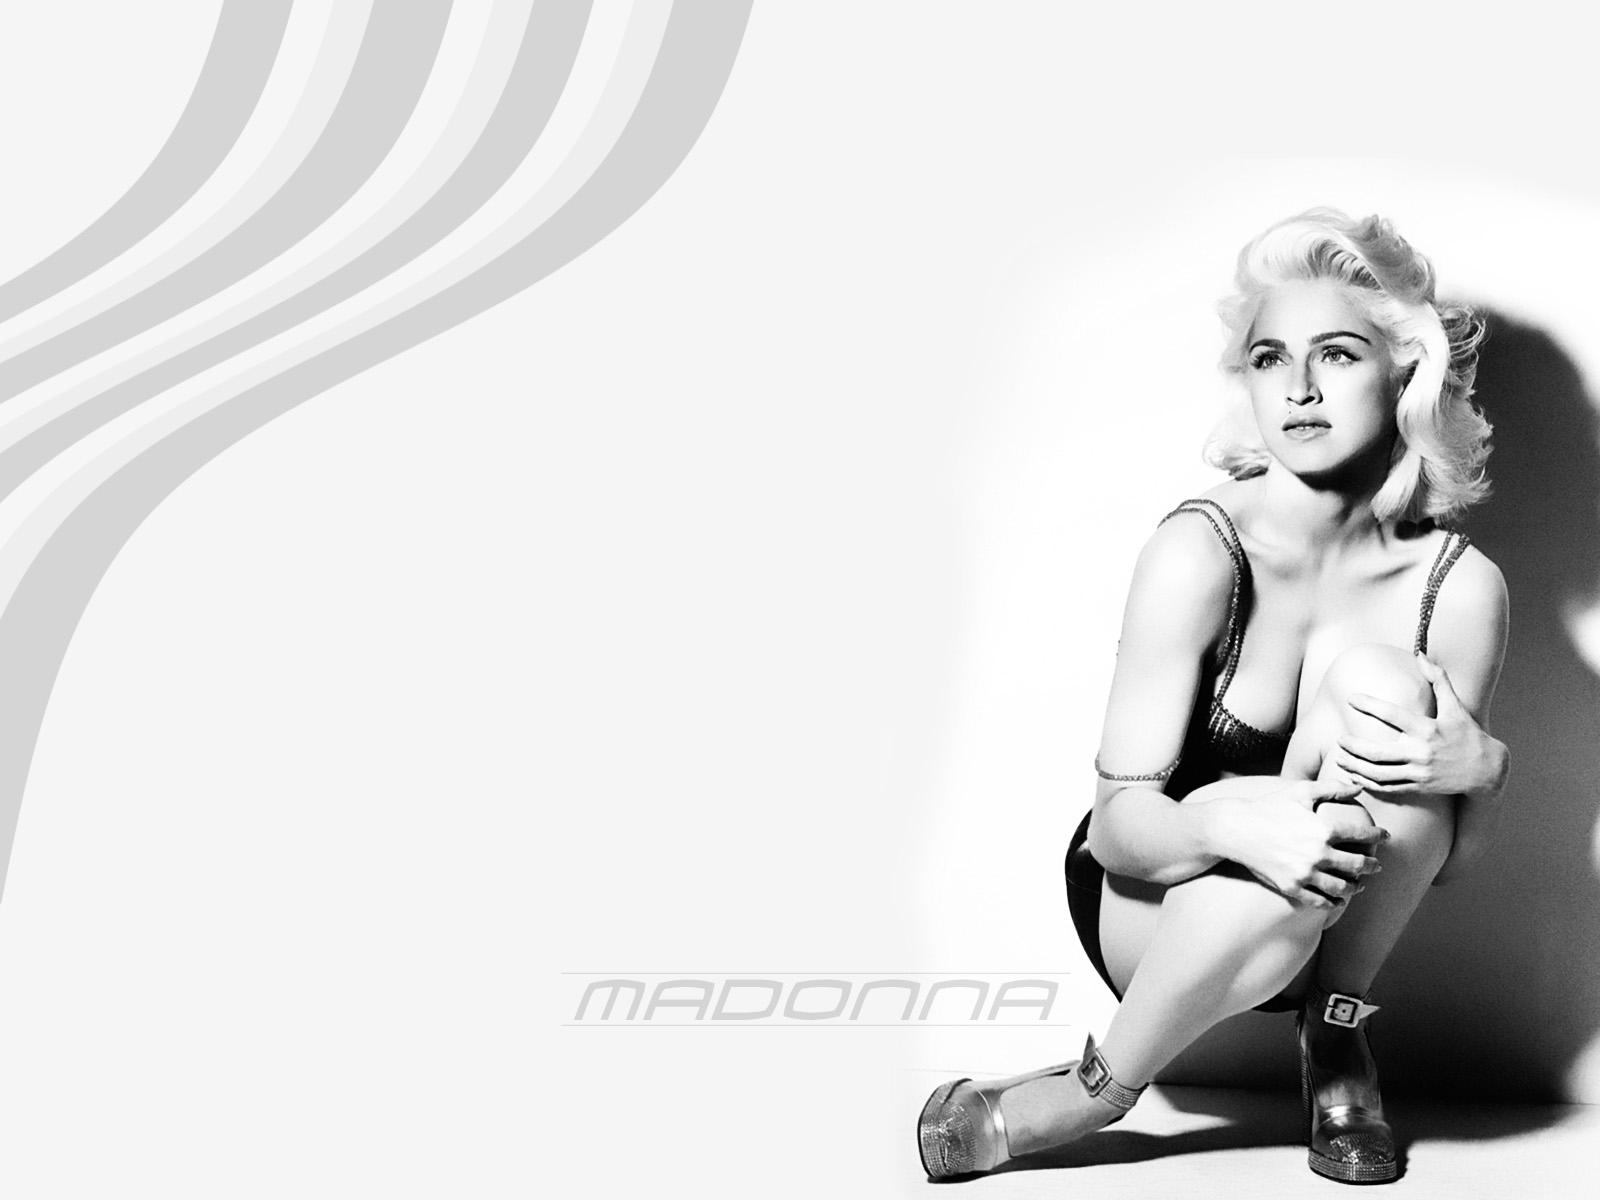 Madonna hot hd wallpapers high resolution pictures - Madonna hd images ...